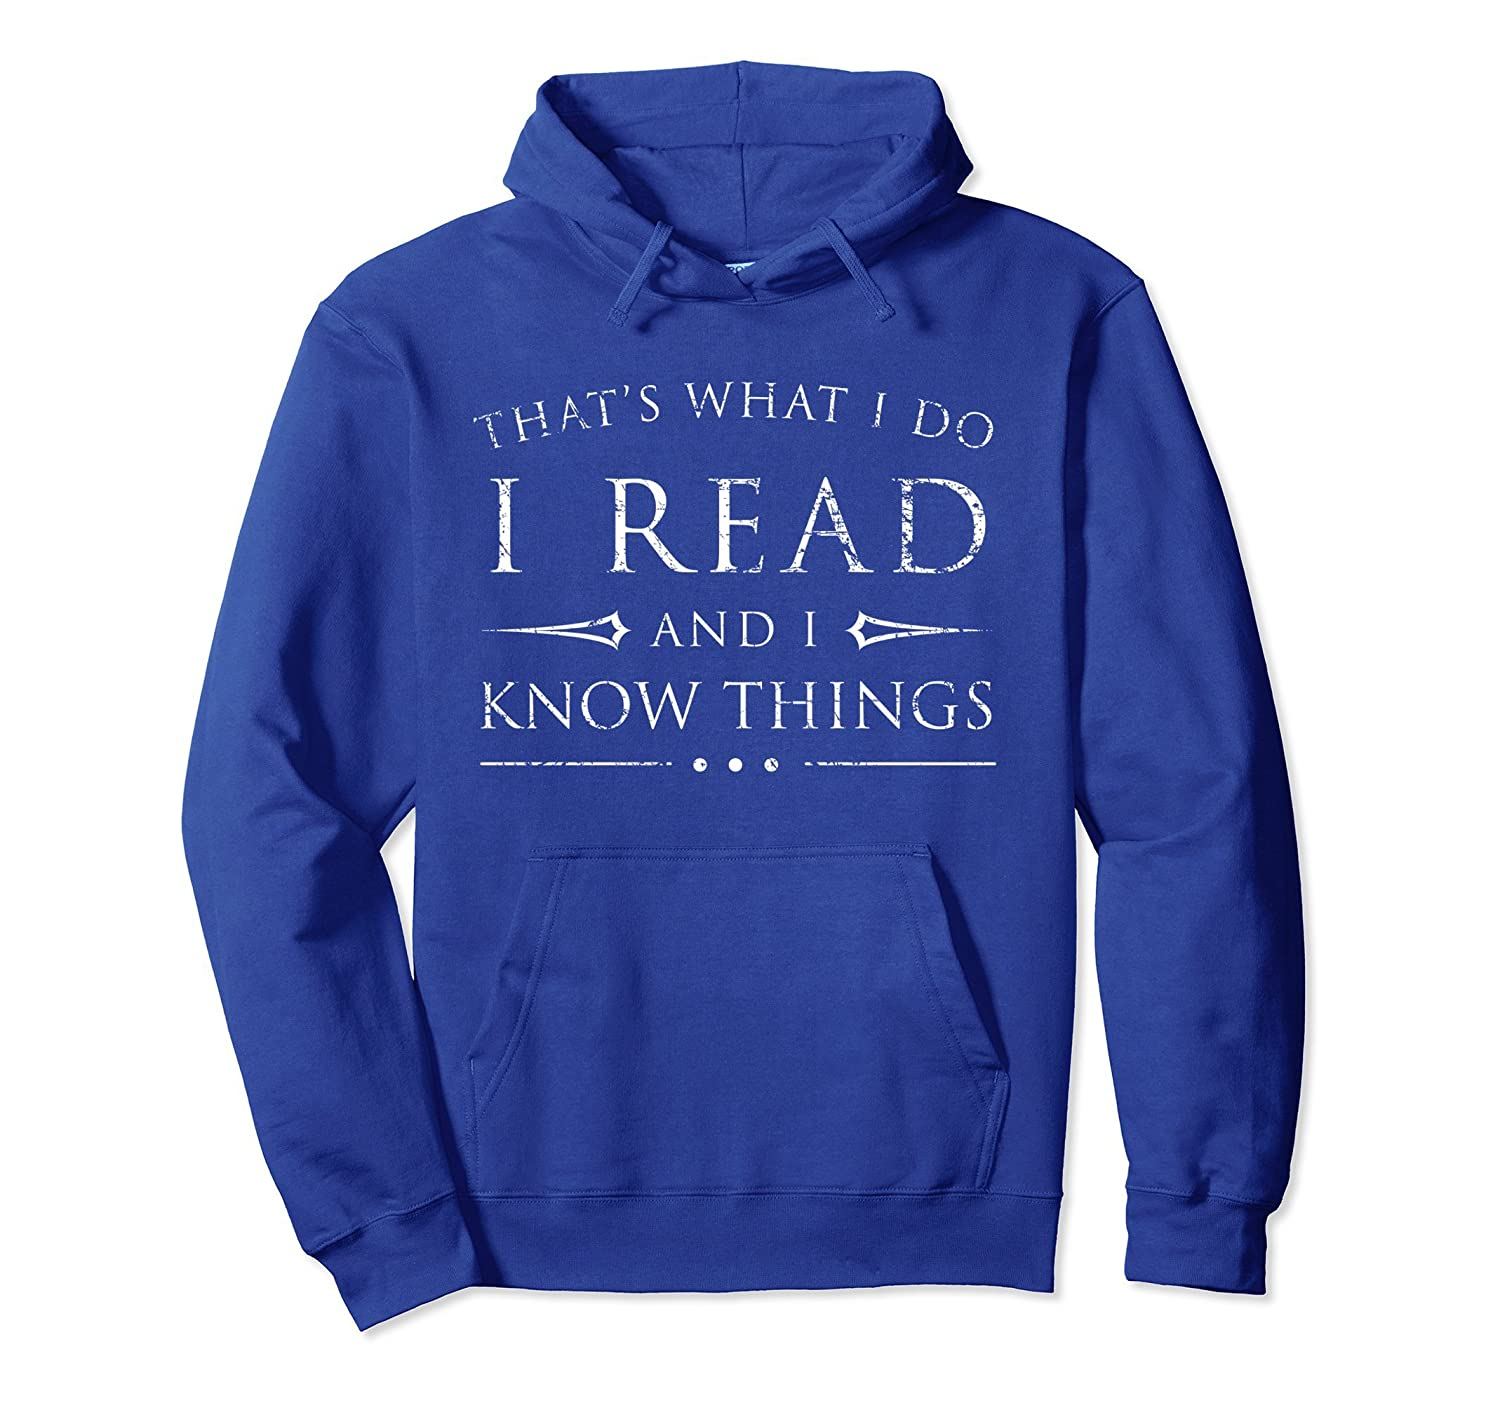 I Read & I Know Things Hoodie Shirt Sarcastic Reading GIft-TH